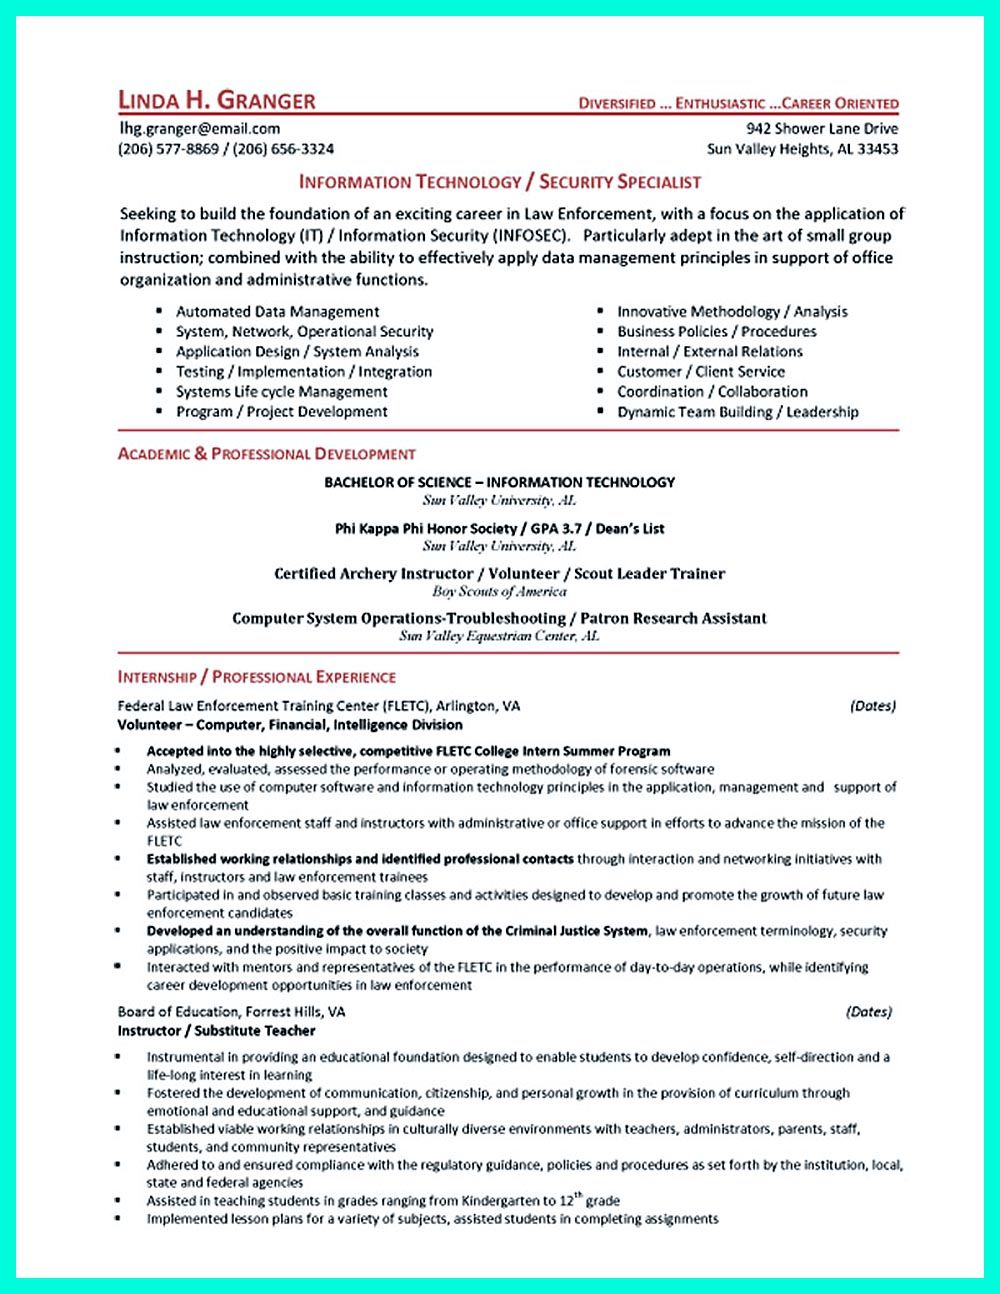 cyber security resume examples » Free Professional Resume ...